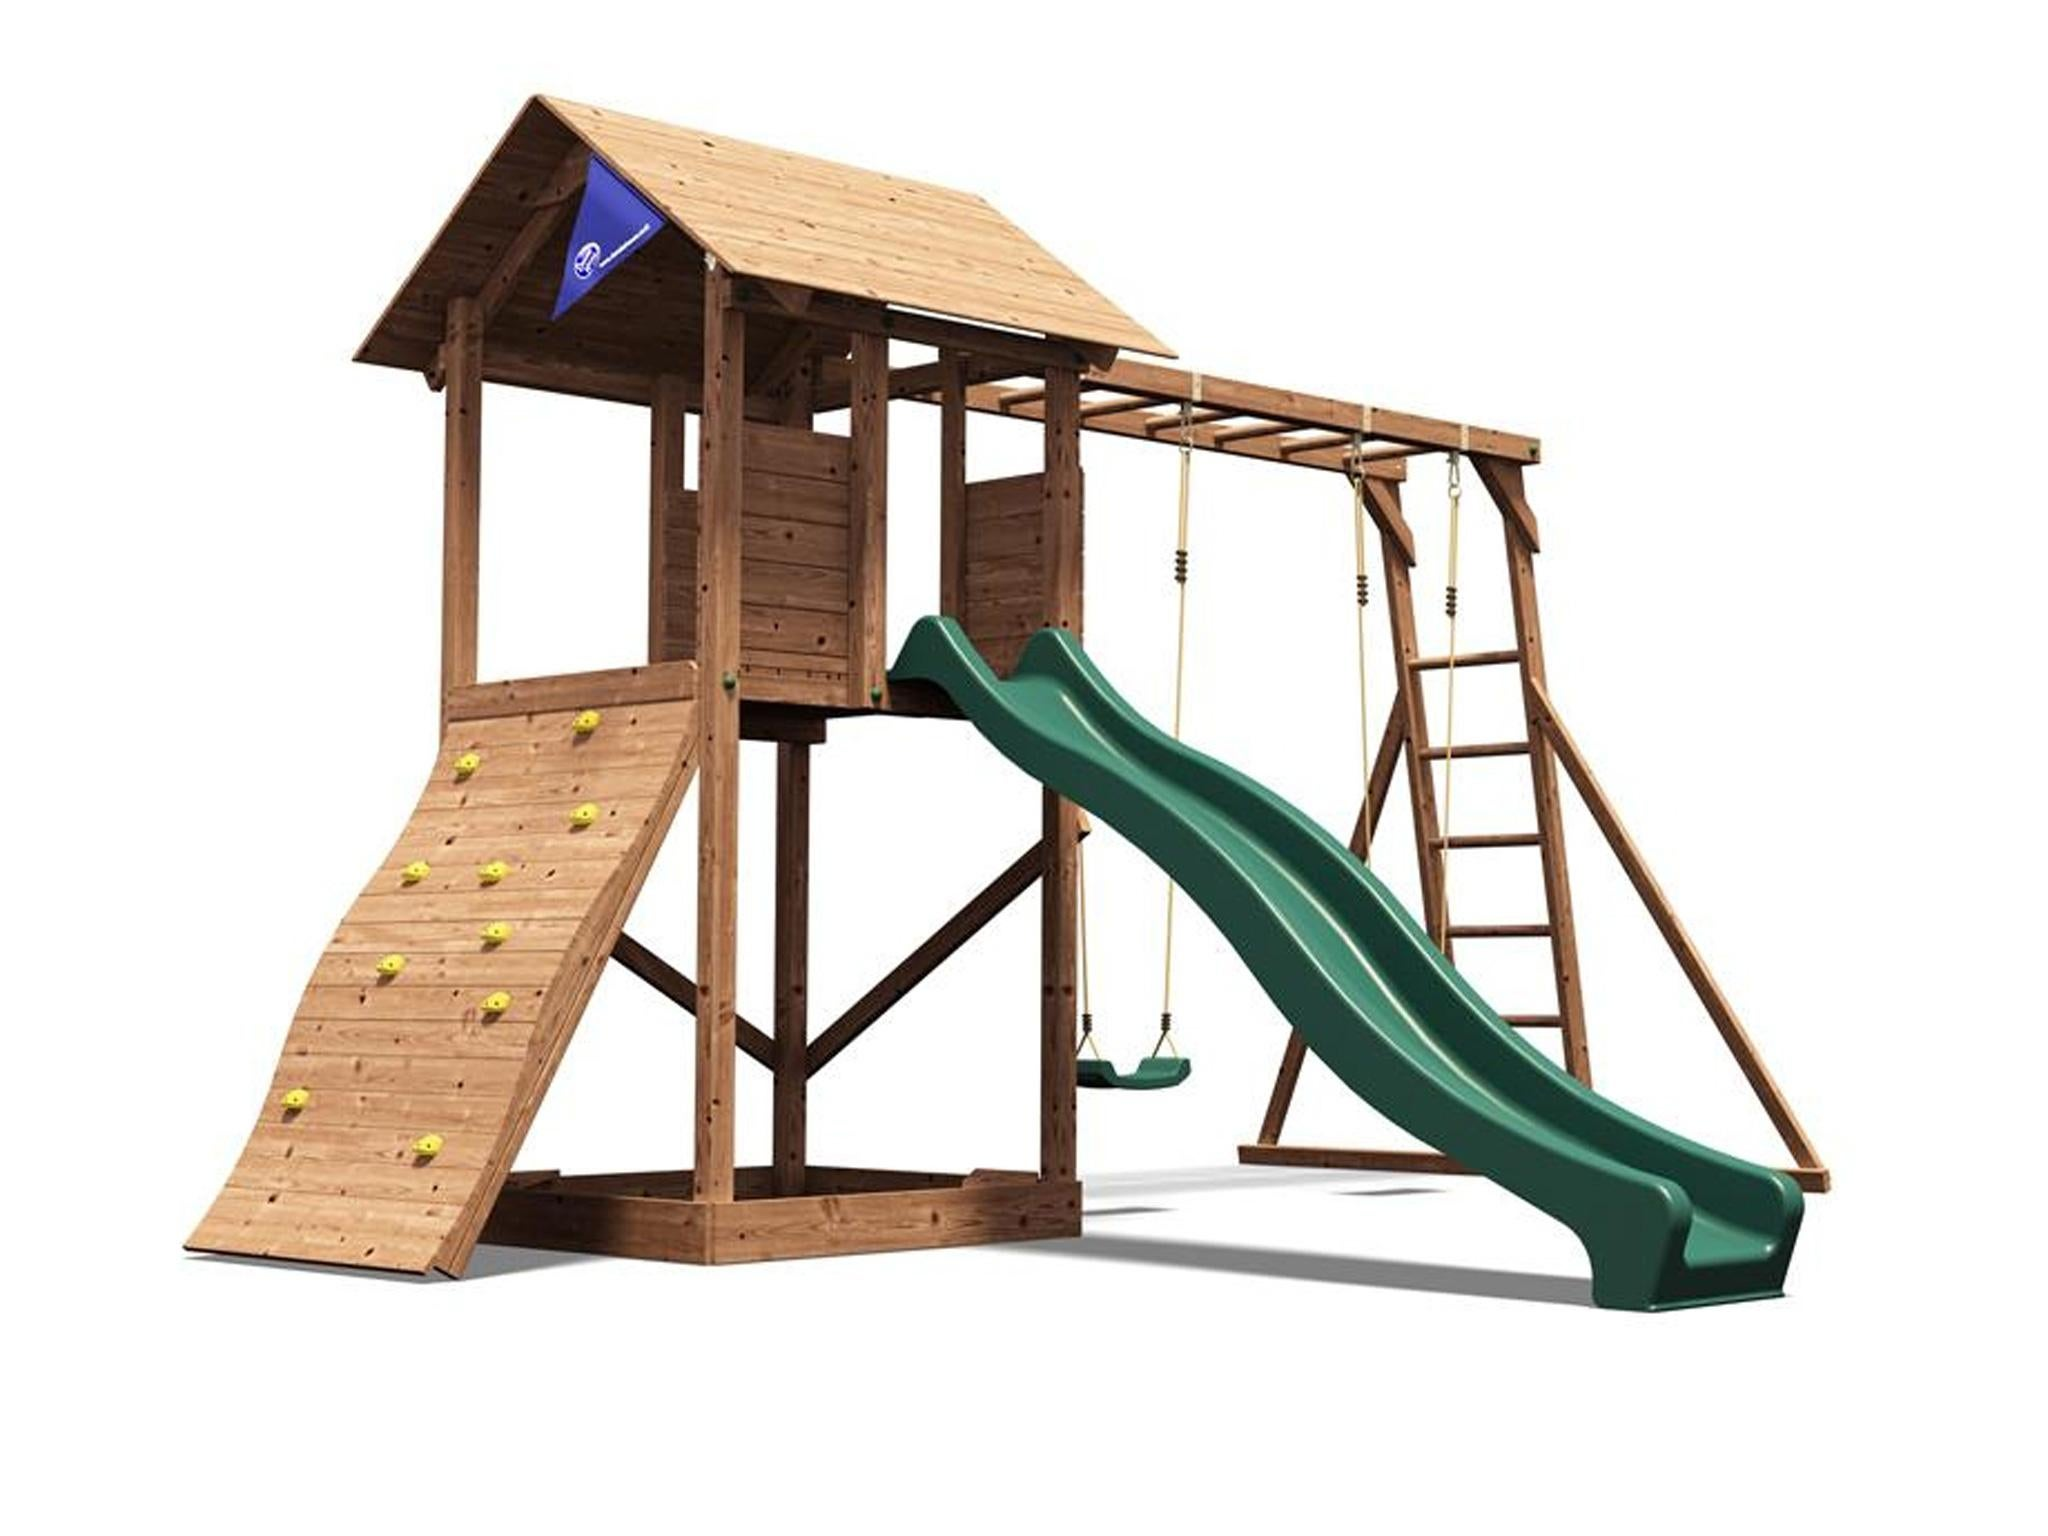 For the very adventurous this playset includes